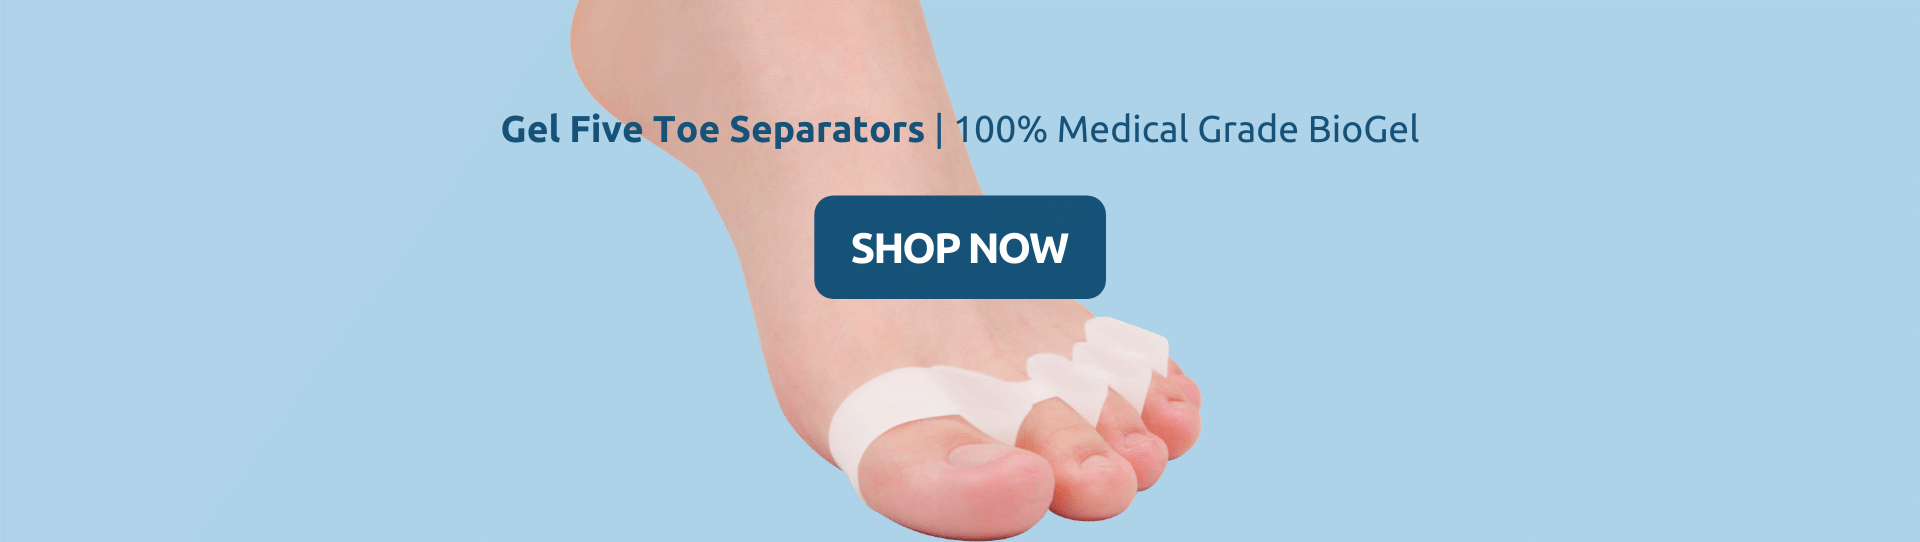 Buy Gel Toe Separators with 100% Medical Grade BioGel